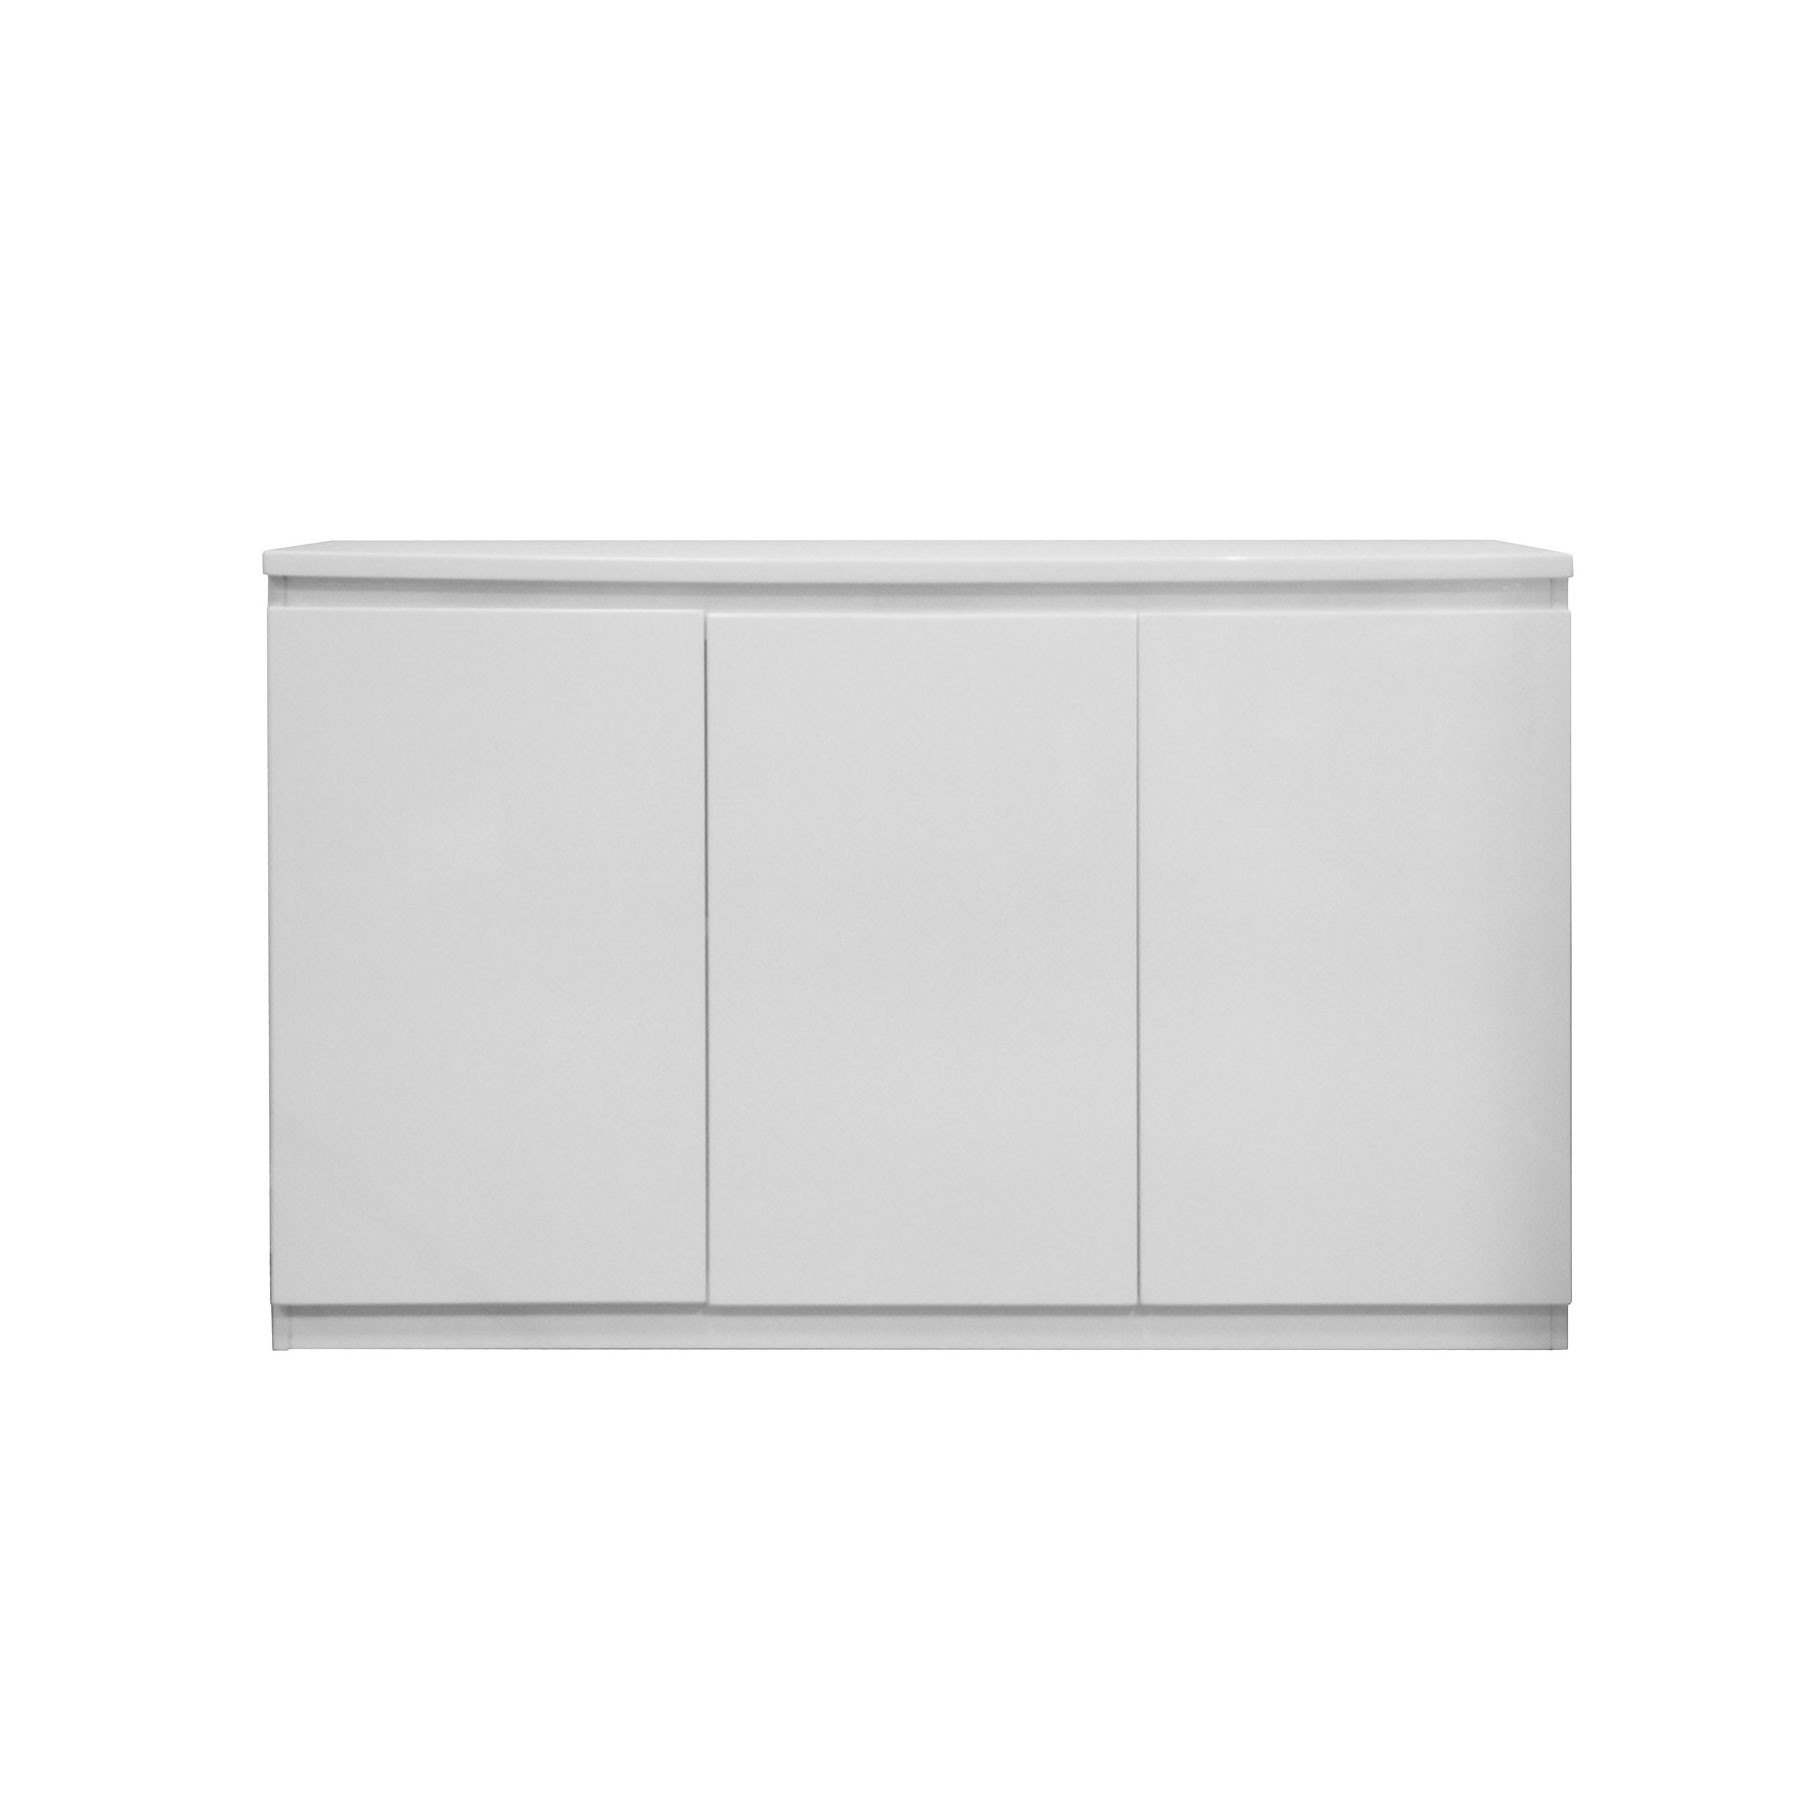 Vigo High Gloss White 3 Door Sideboard Pertaining To Current White Wash 3 Door 3 Drawer Sideboards (View 16 of 20)